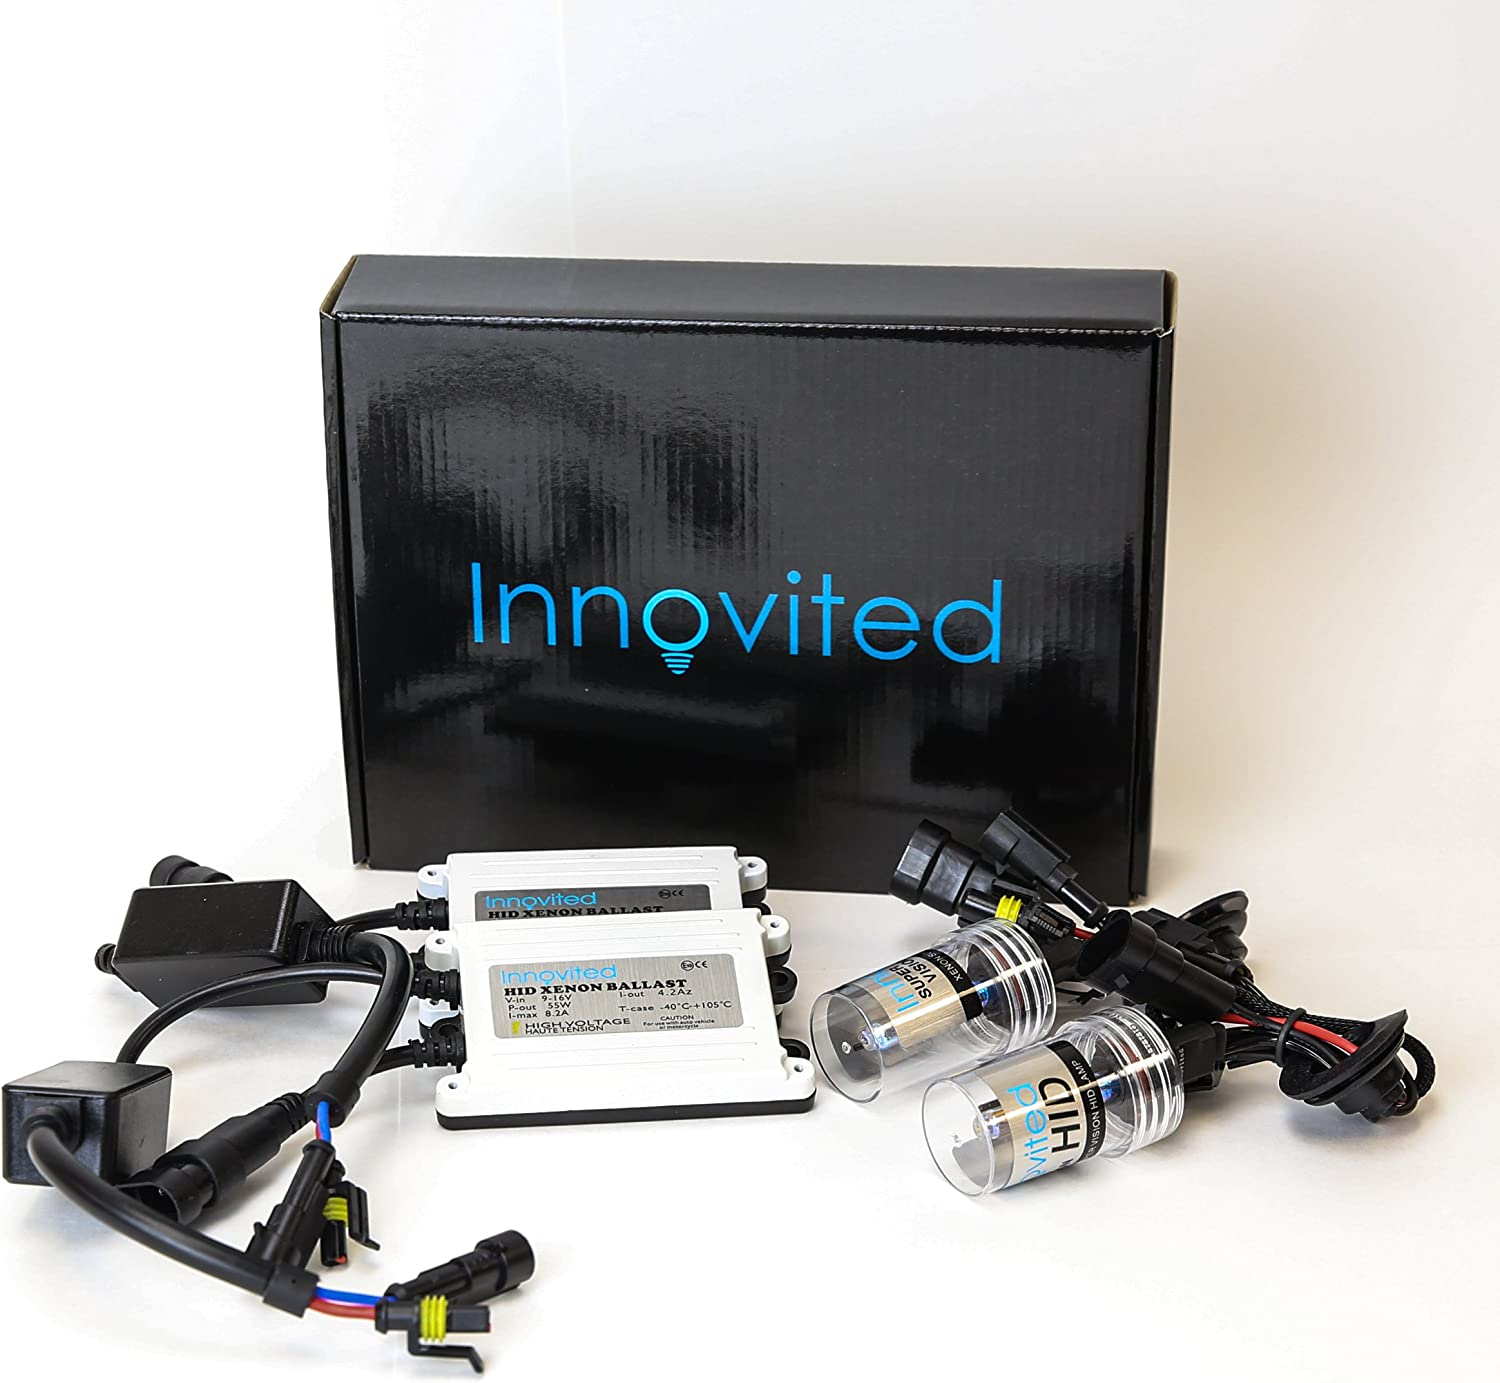 H11 H9 H8-8000K Ice Blue 2 Year Warranty Innovited 35W AC Xenon HID LightsAll Bulb Sizes and Colors with Slim Ballast